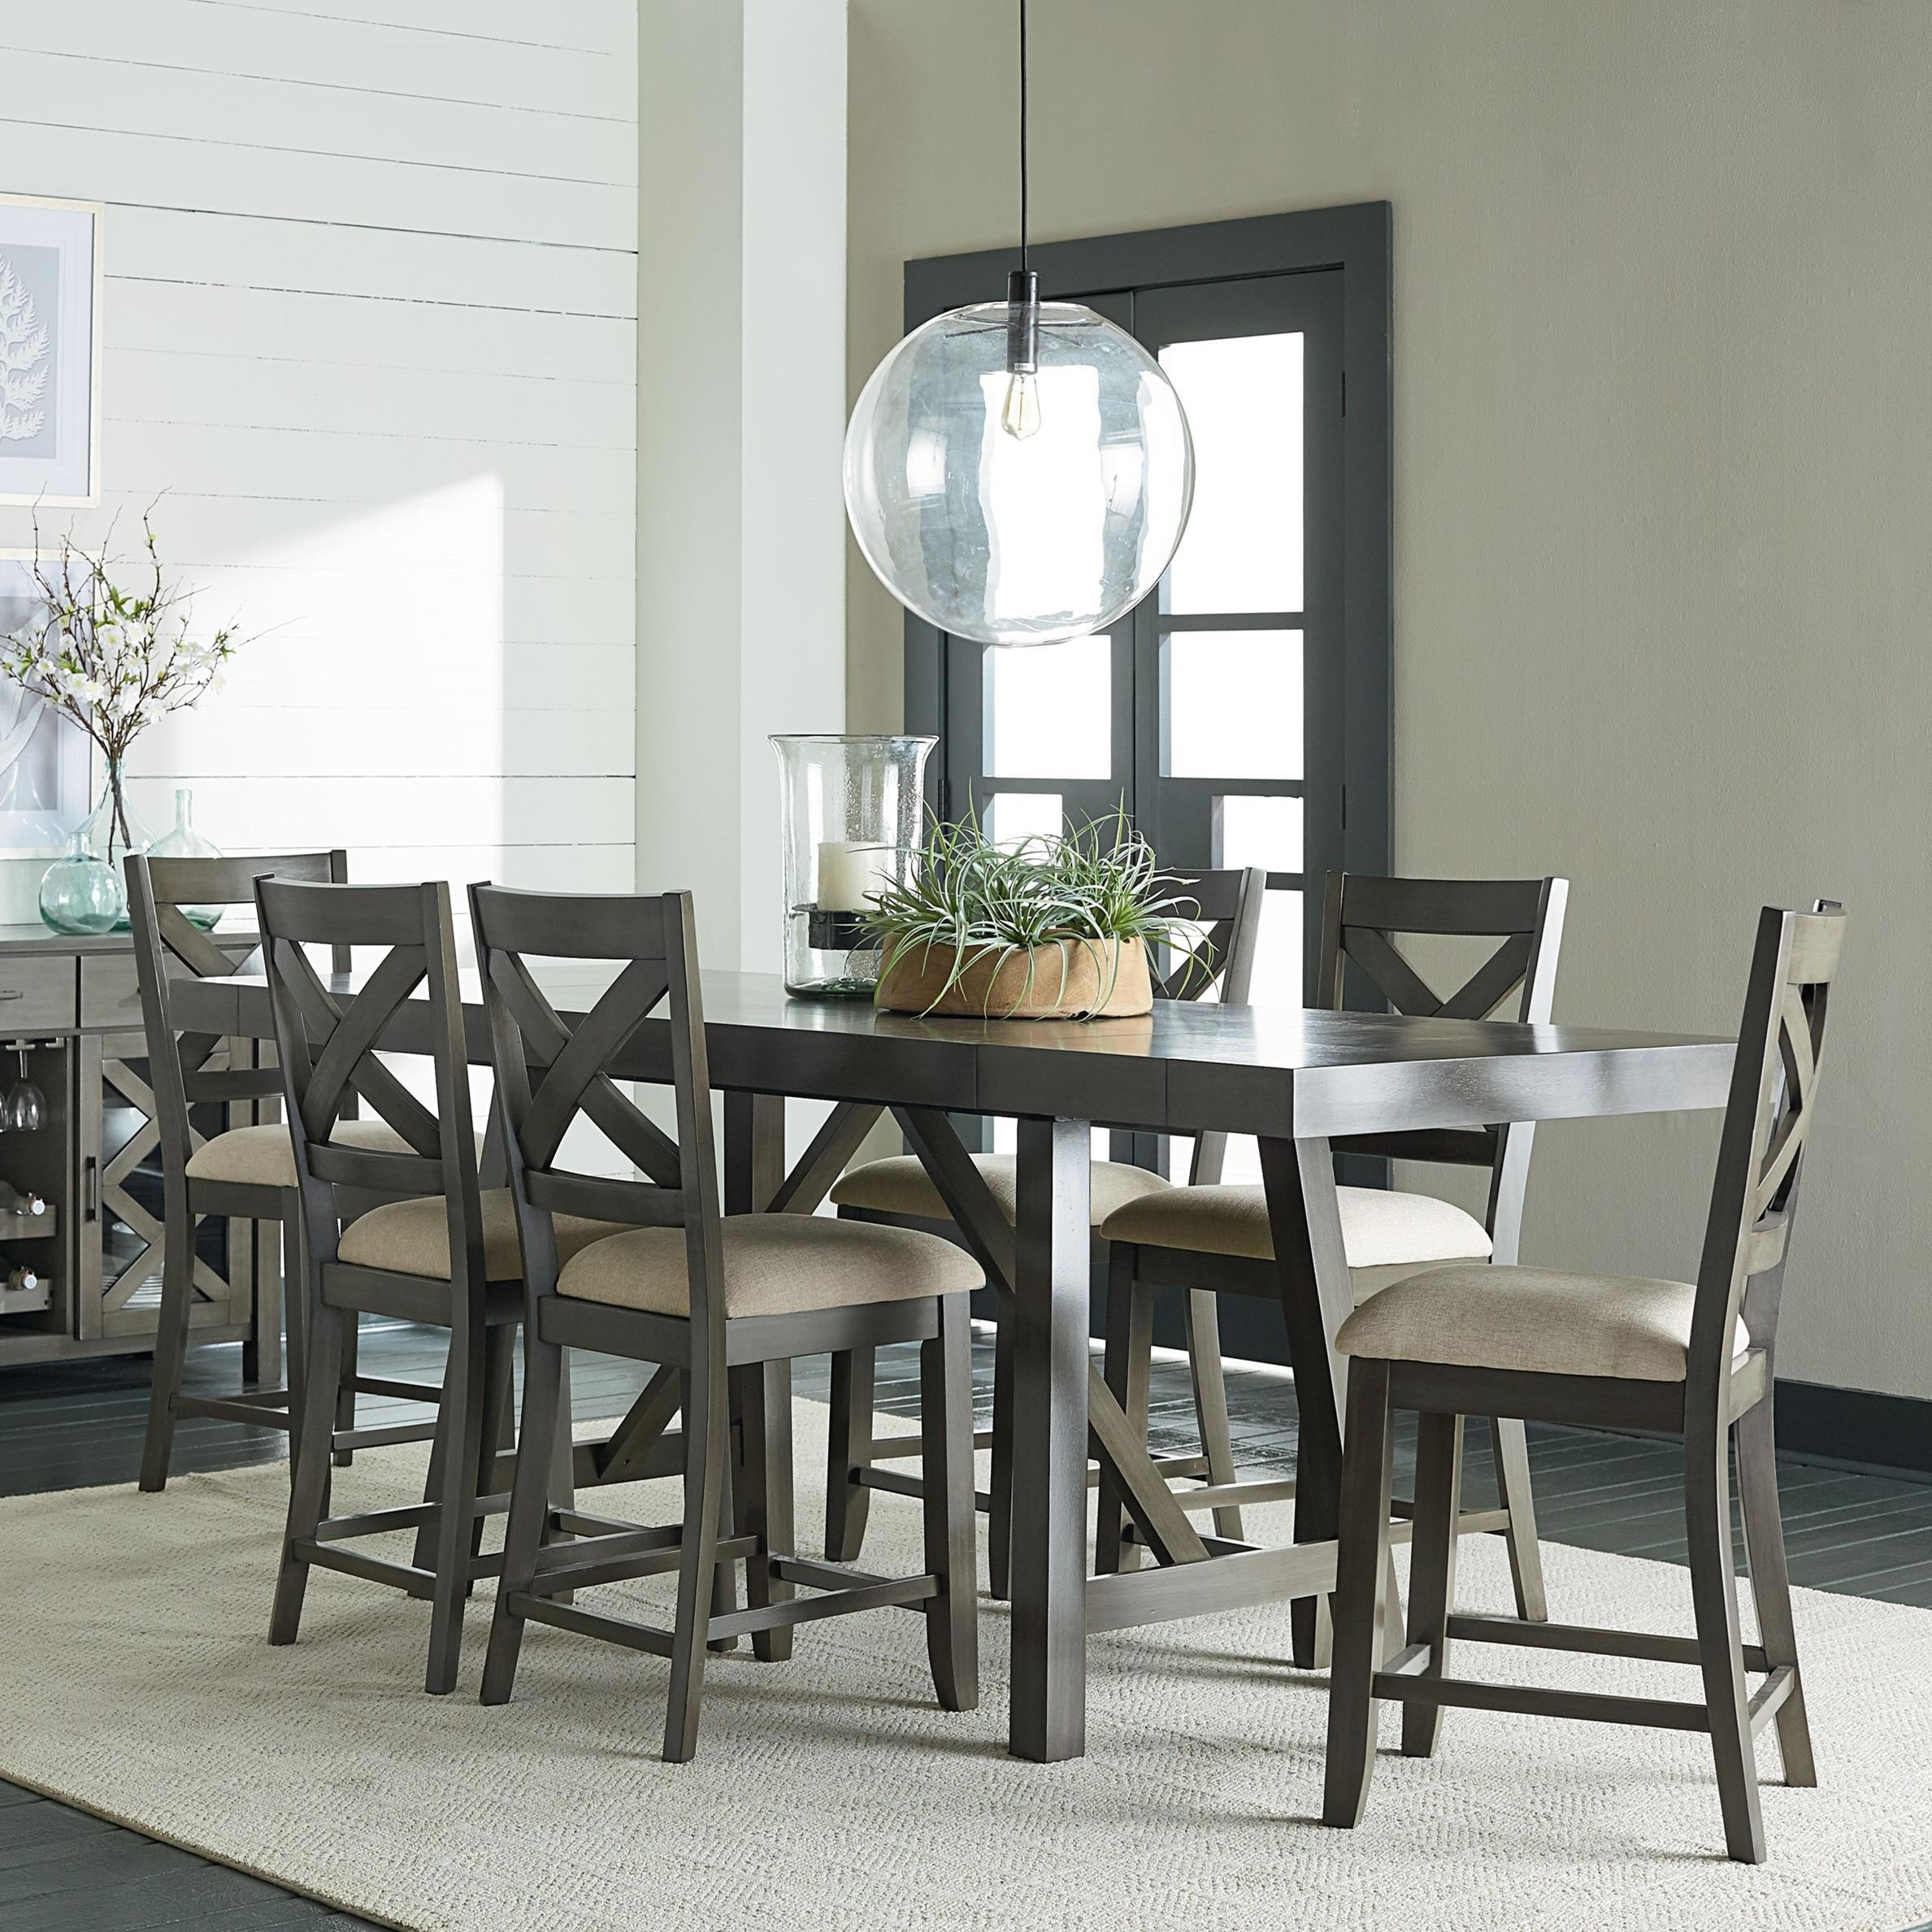 Set Dining Room Table: Counter Height 7-Piece Dining Room Table Set By Standard